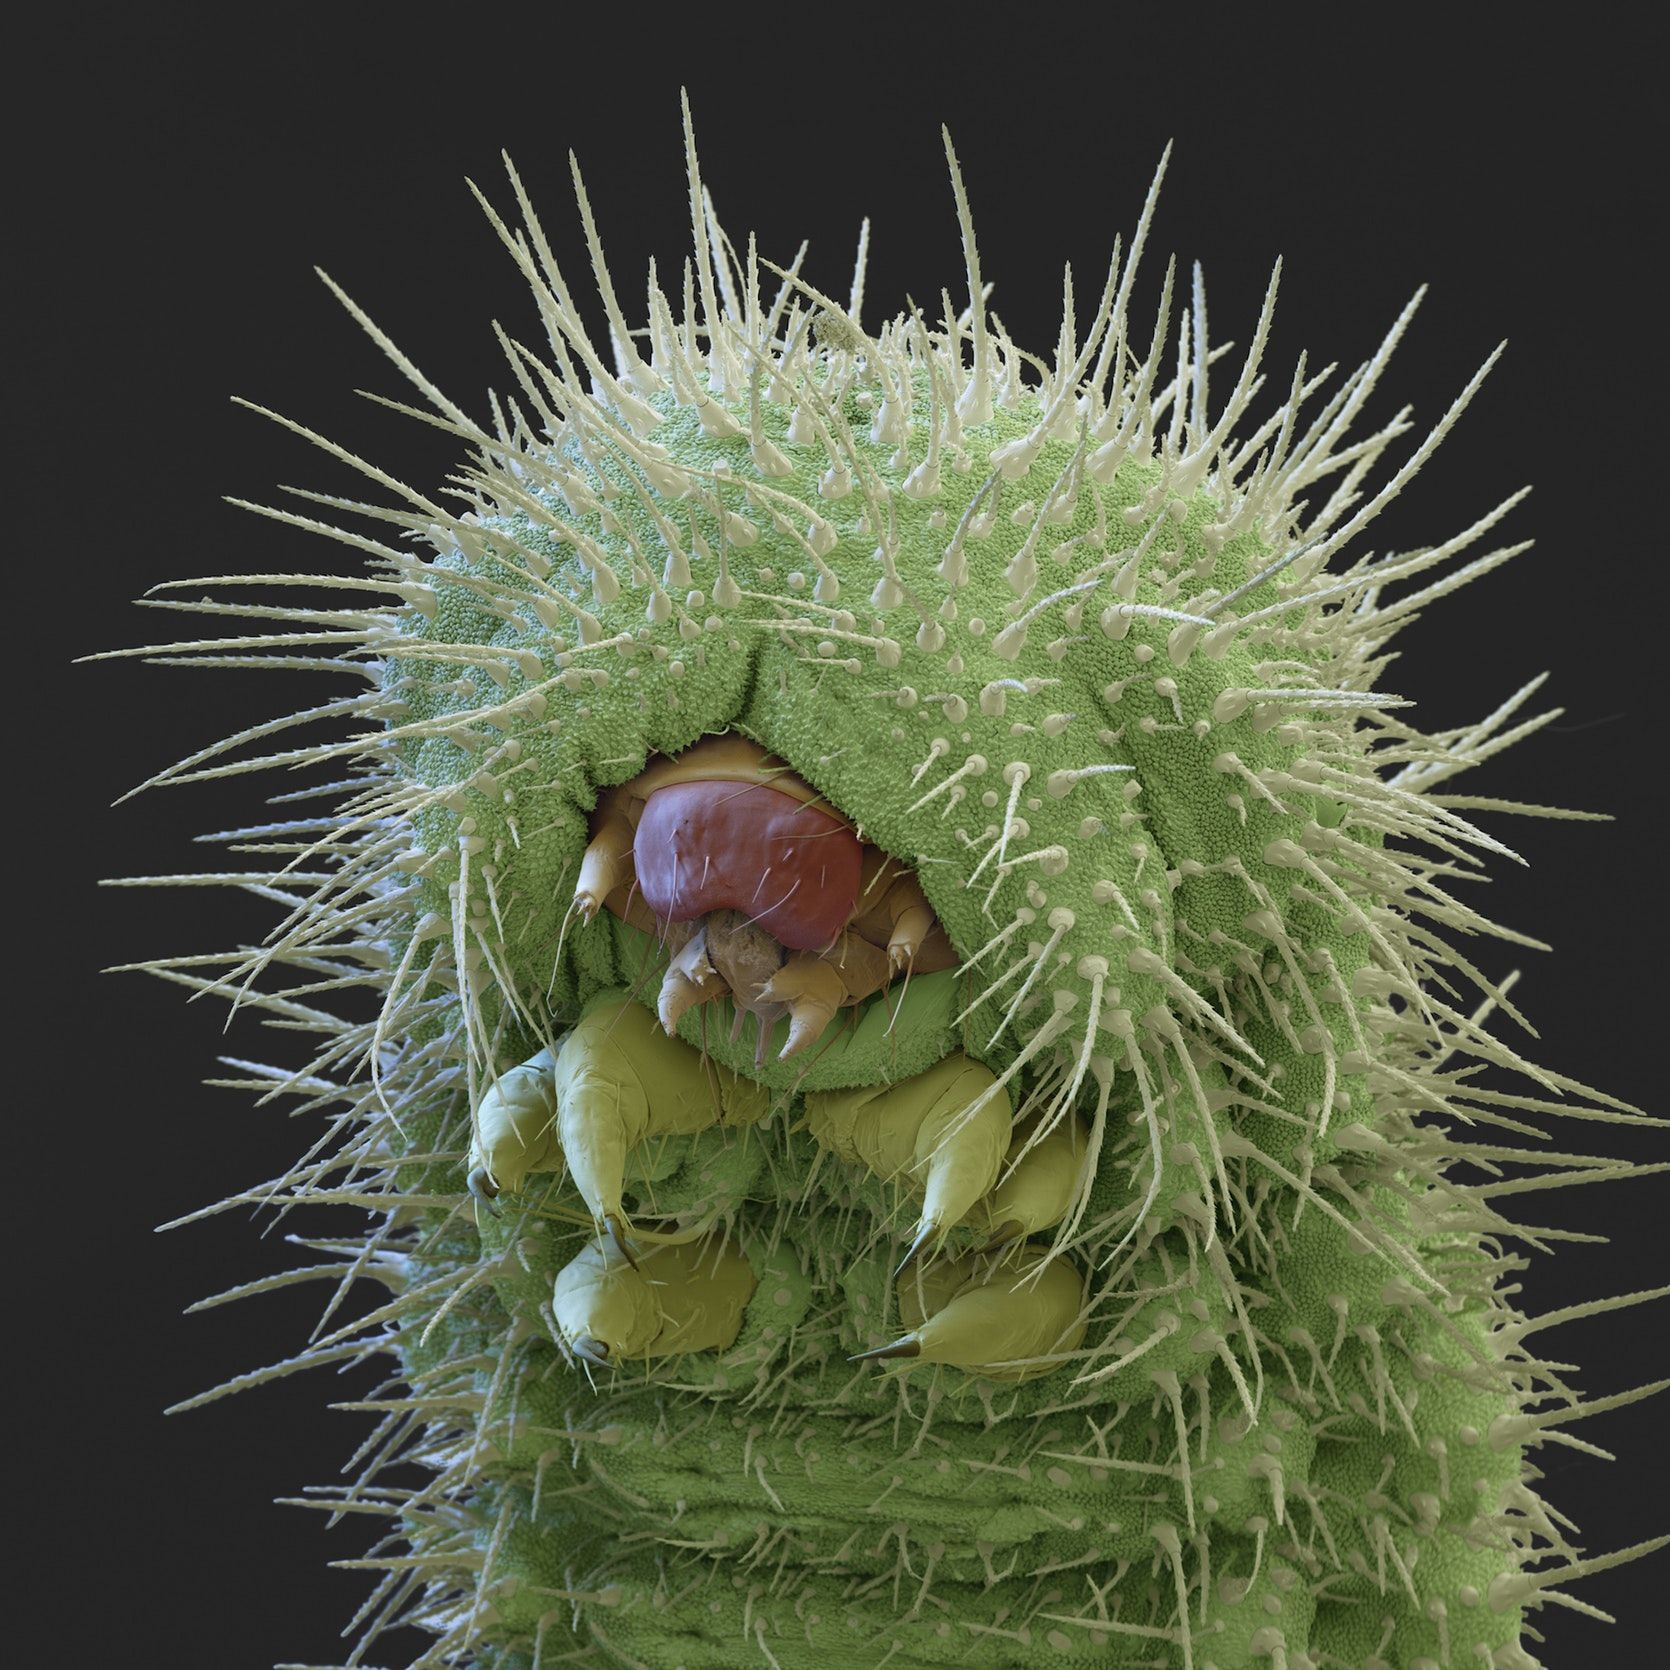 Micro Monsters Up Close And Personal Microscopic Photography